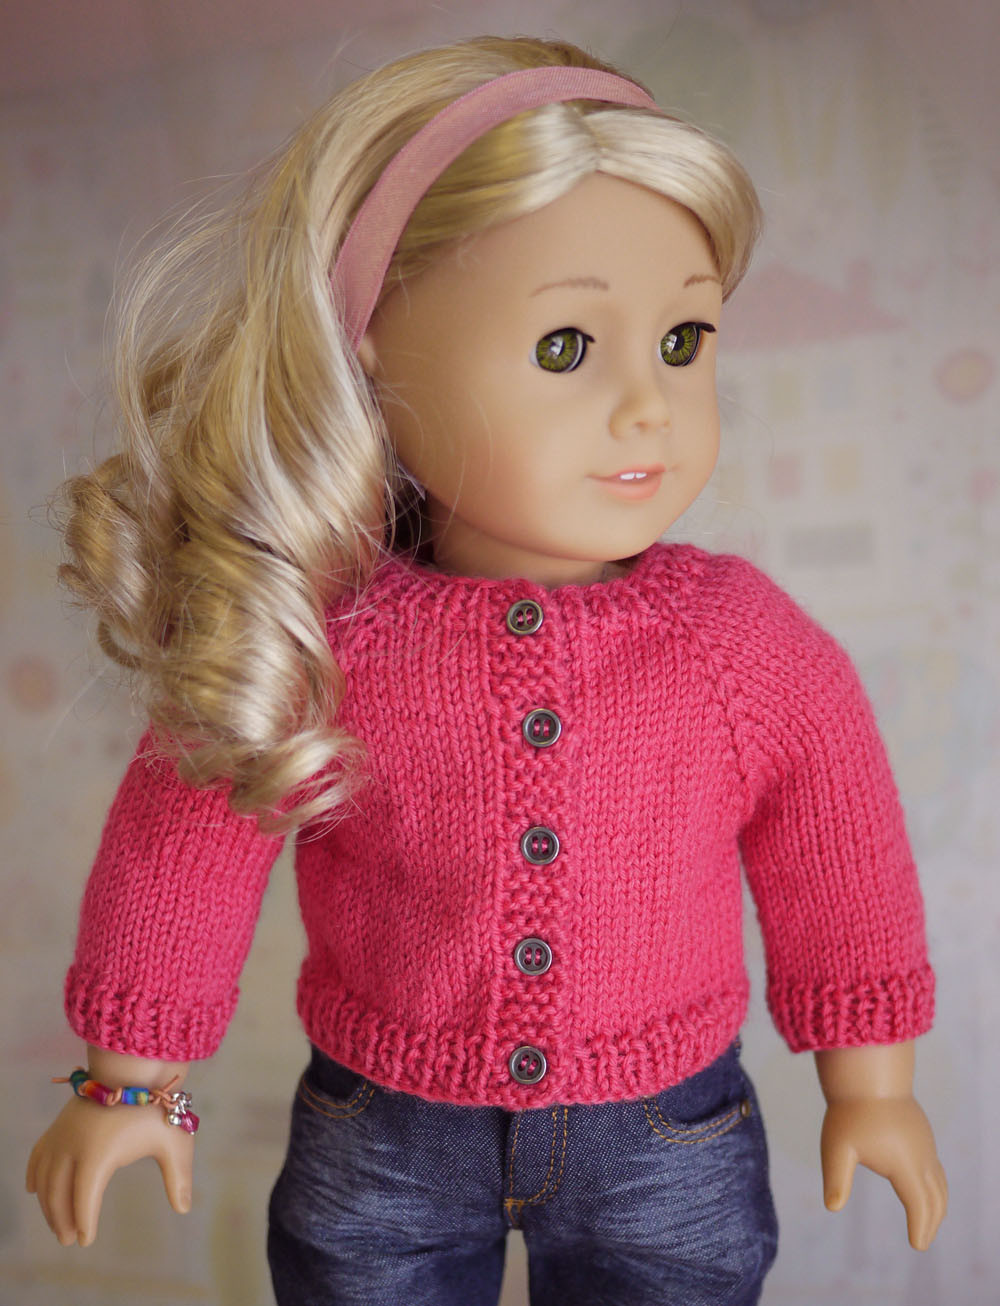 Awesome American Girl Doll Cardigan Sweater Knitting Pattern Free Knitting Patterns for American Girl Dolls Of Delightful 41 Models Free Knitting Patterns for American Girl Dolls